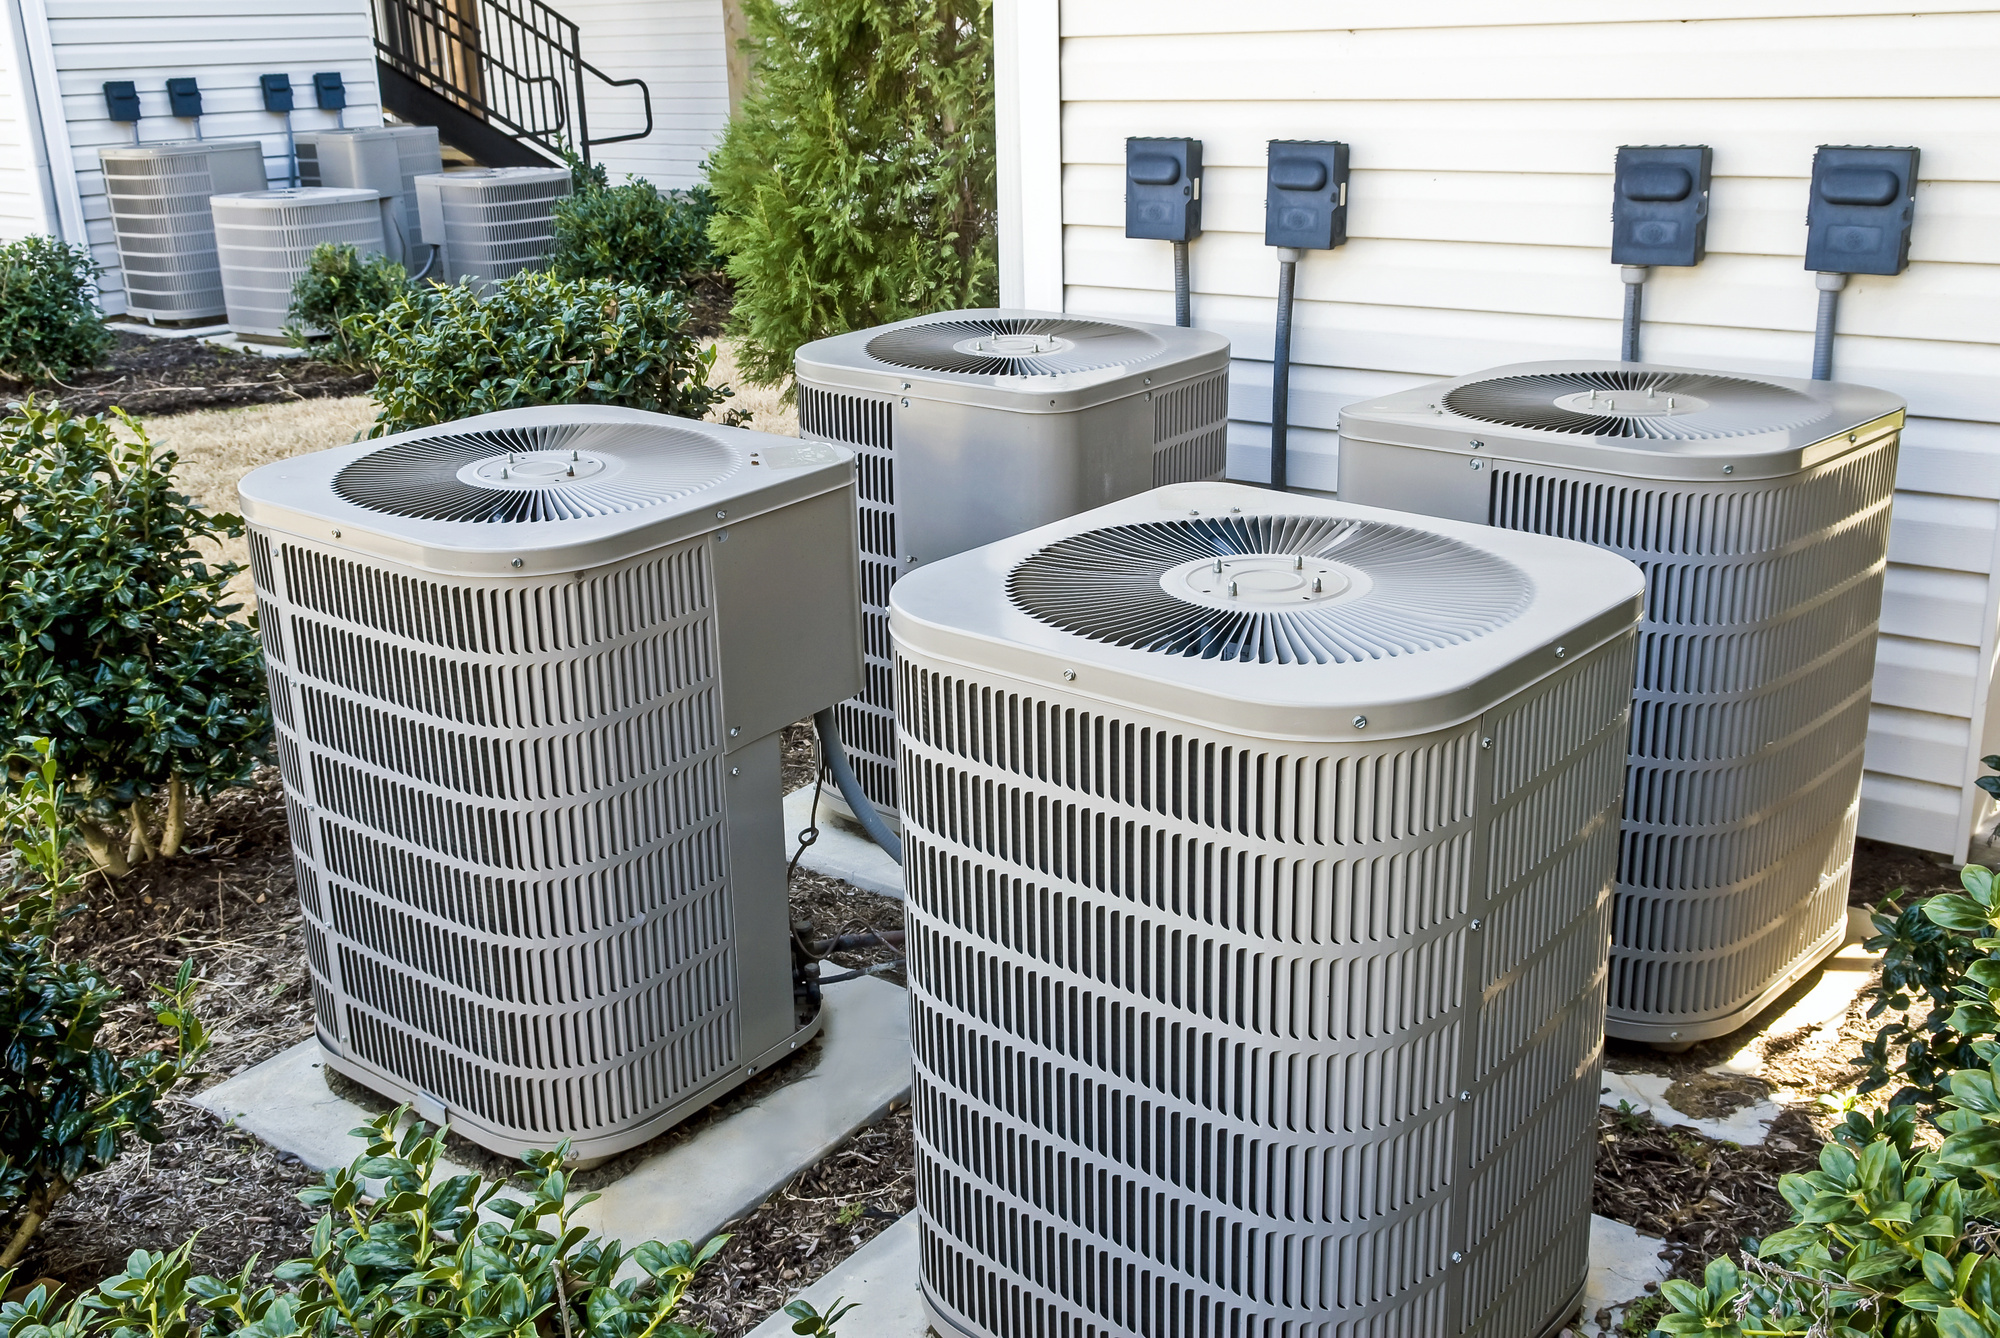 Outside Airconditioning Units